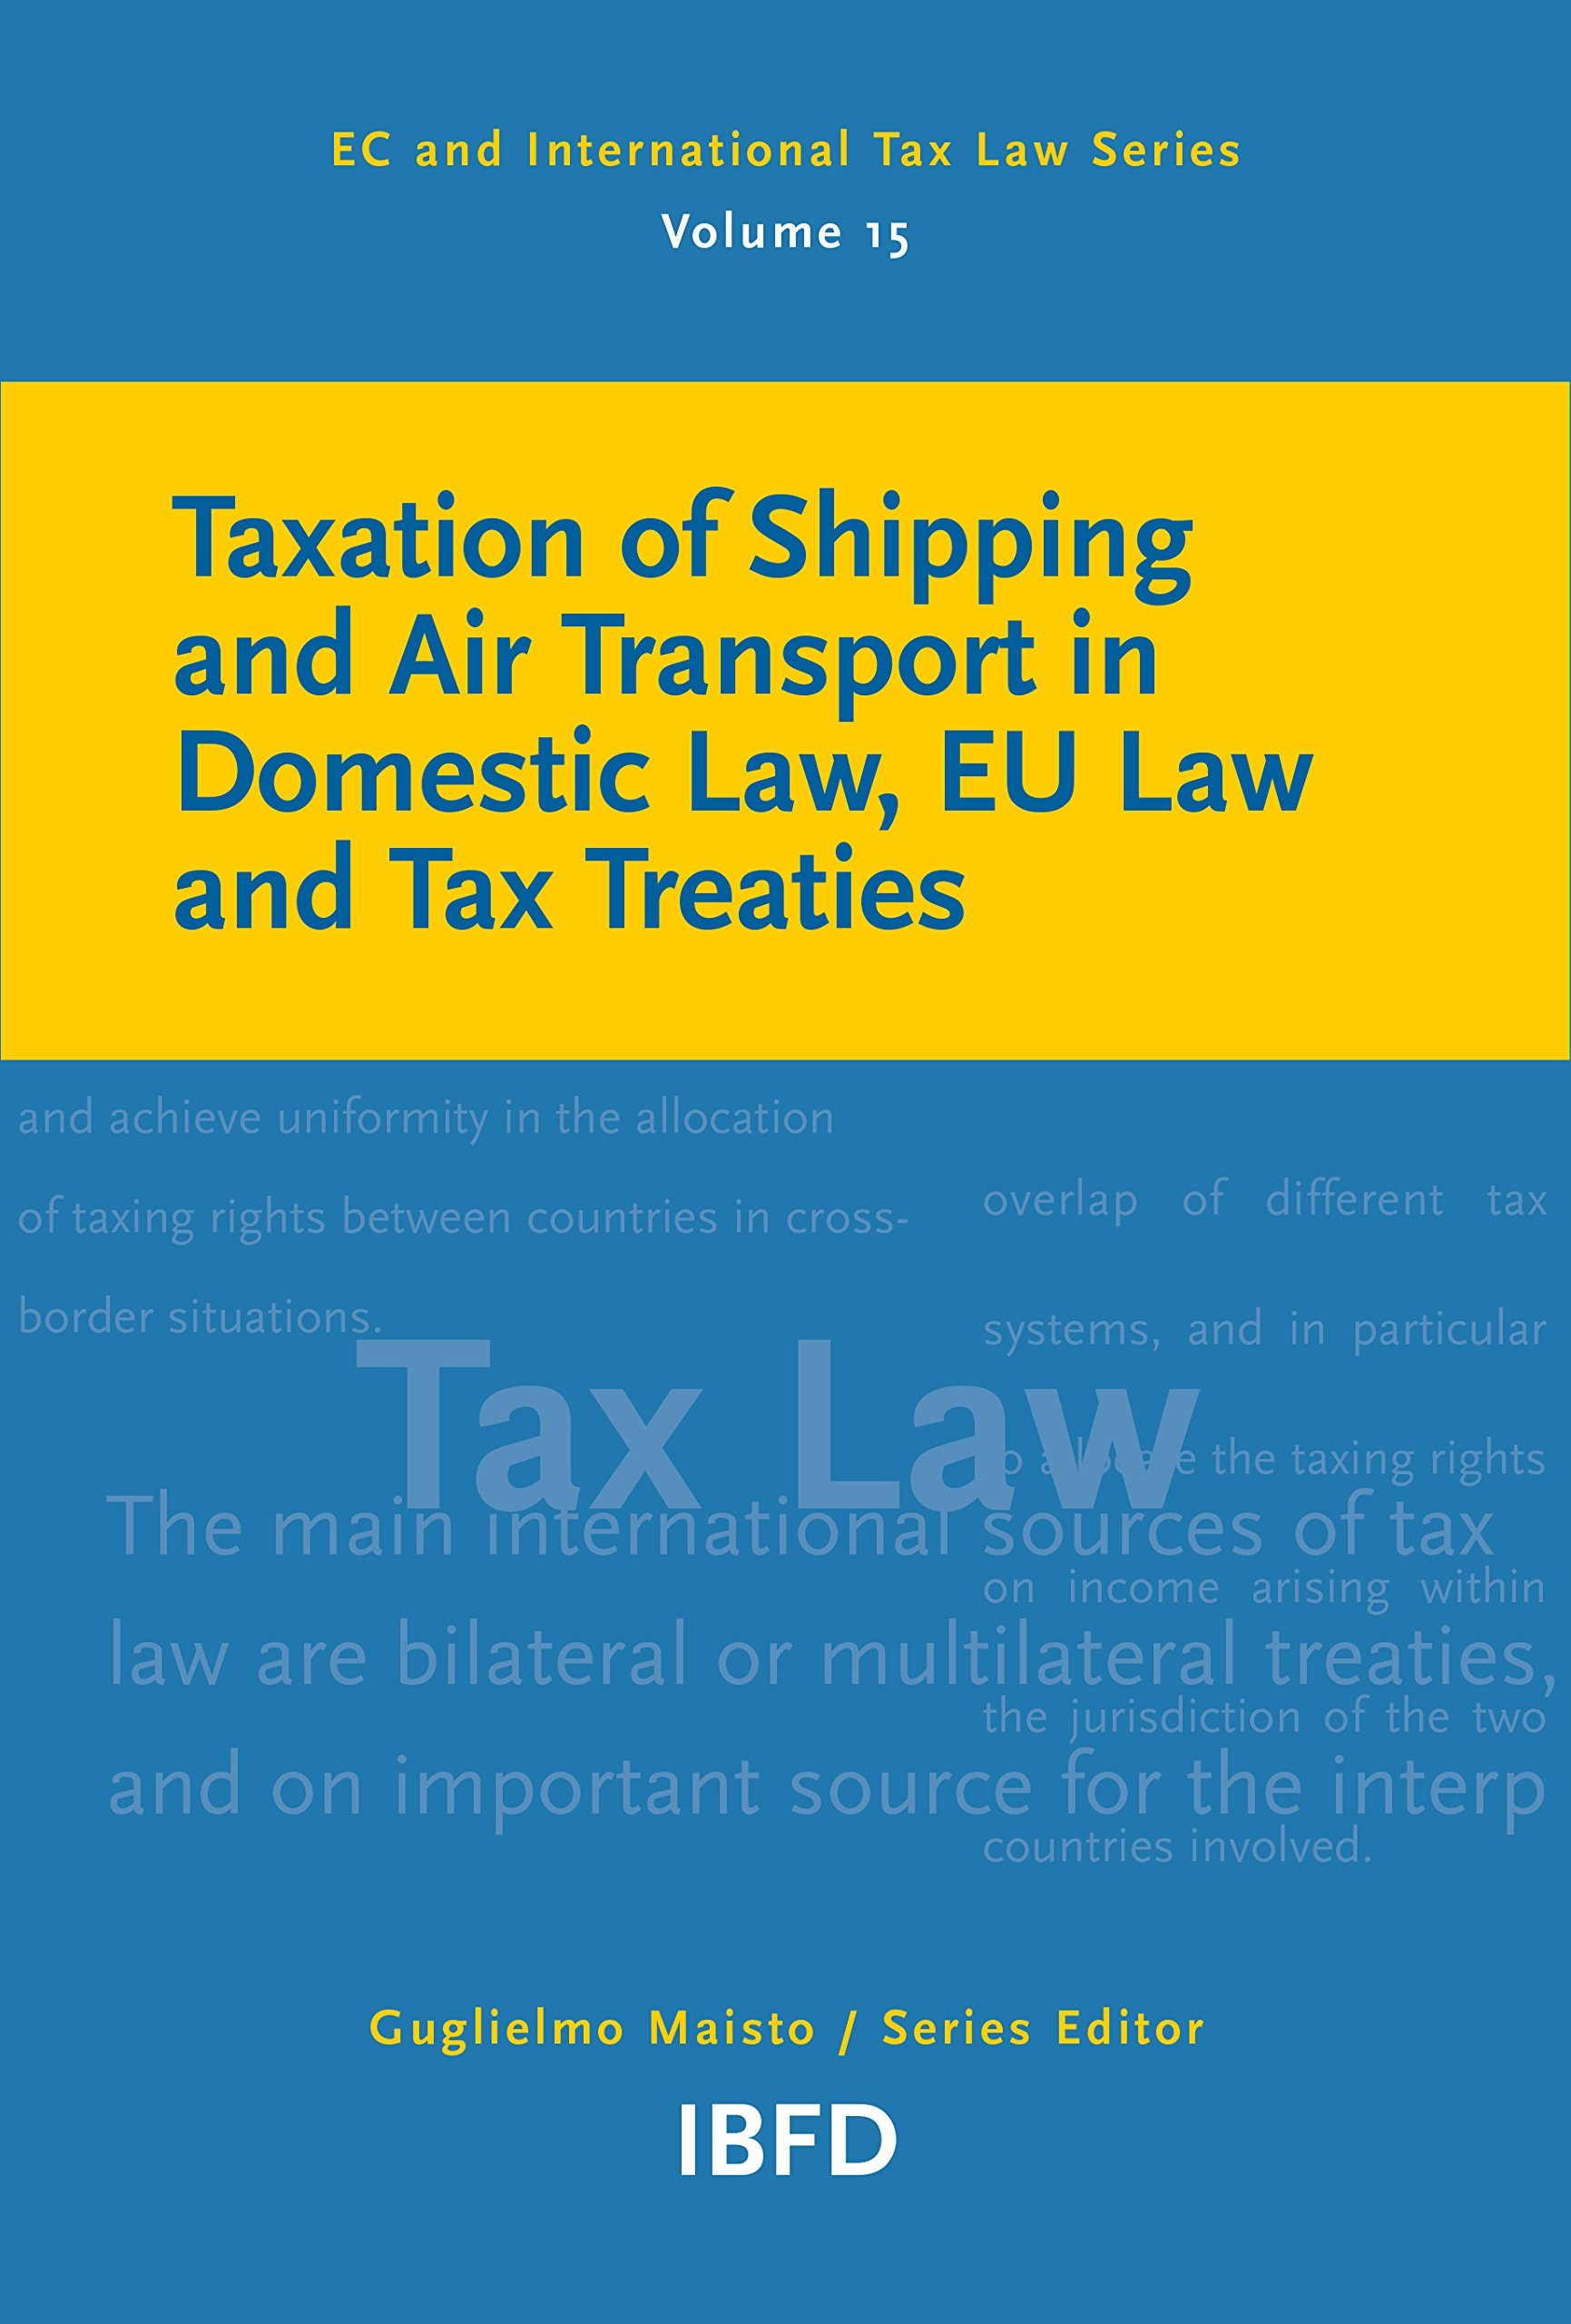 Taxation of Shipping and Air Transport in Domestic Law, EU Law and Tax Treaties PDF